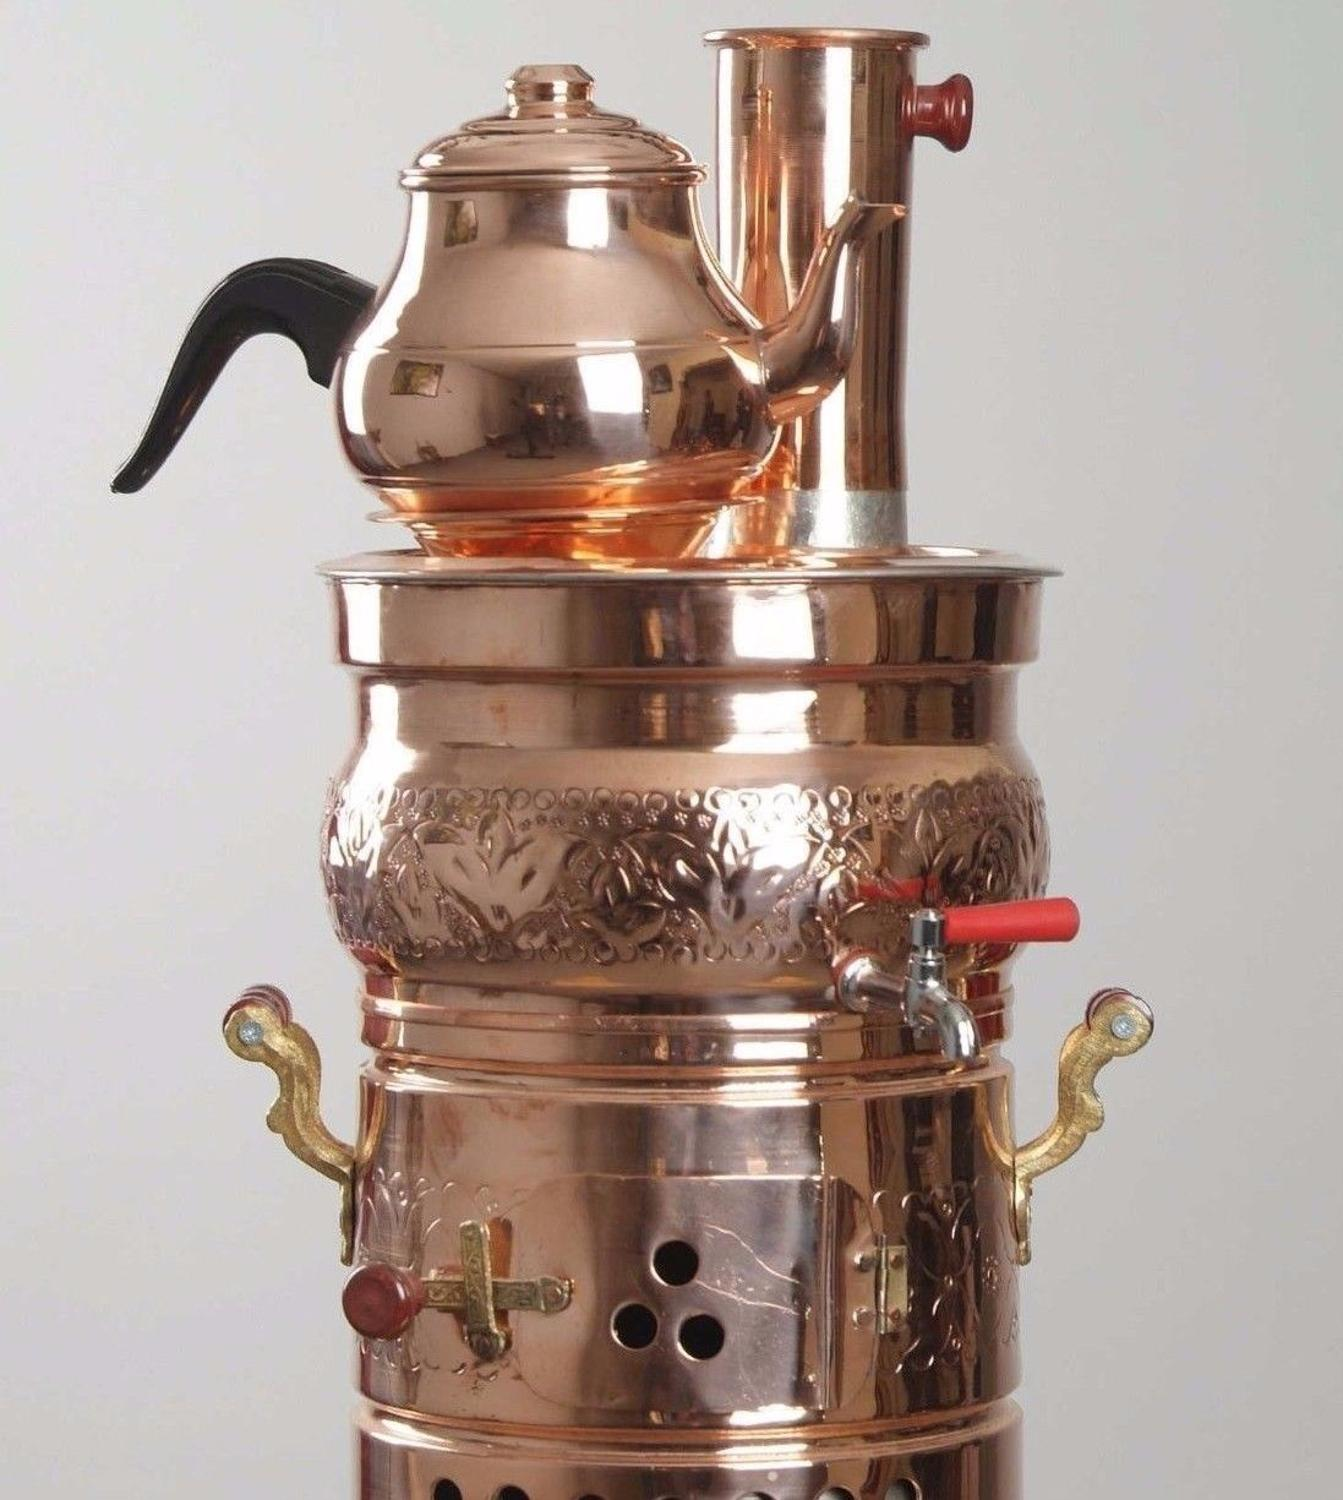 Copper Hand Painted Electric Samovar Tea Kettle, Works With Electric